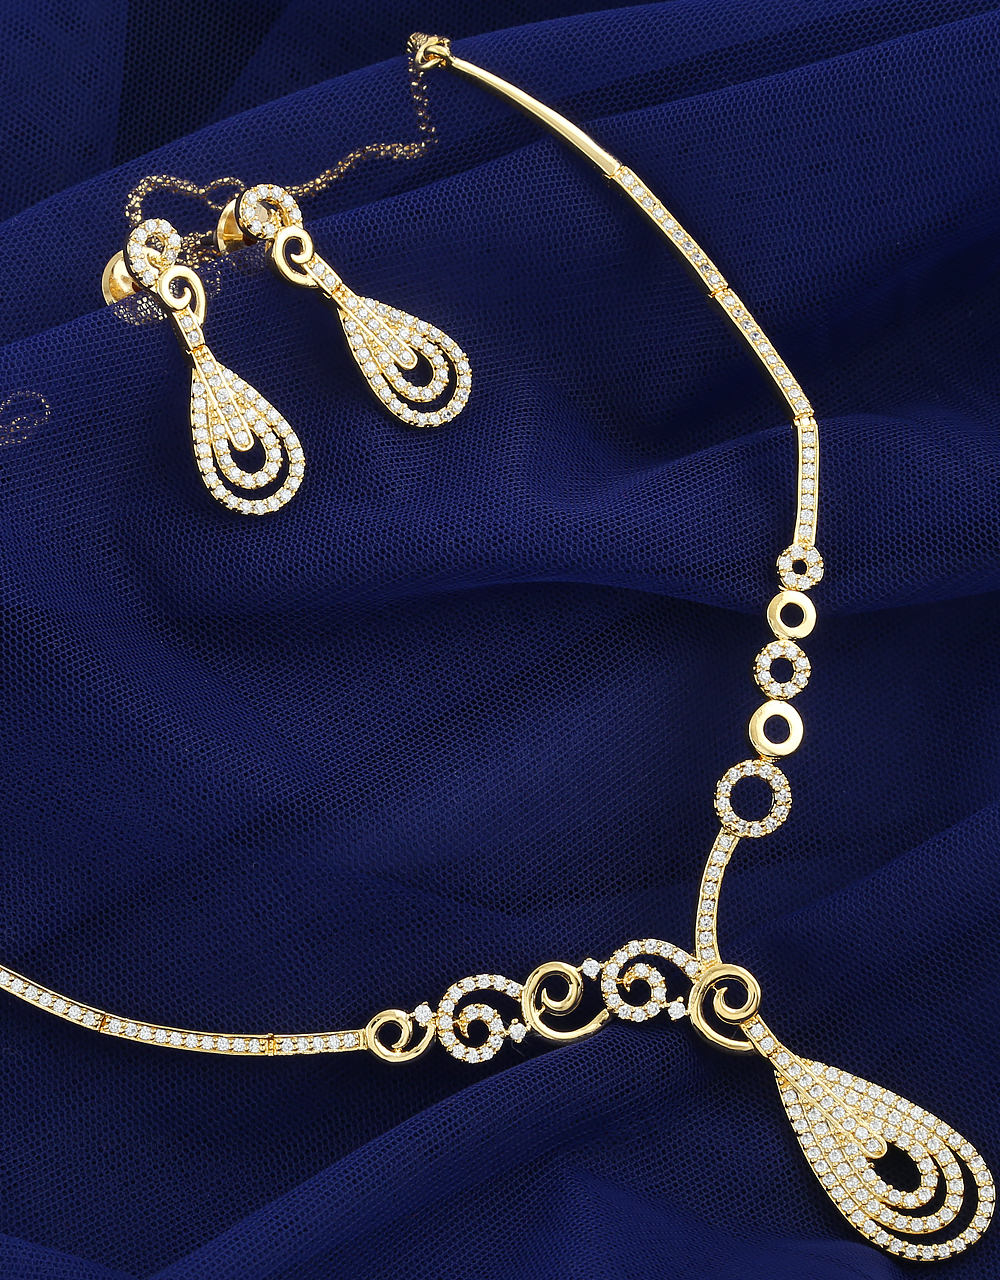 Gold Tone Exclusive Diamond Necklace Studded With American Diamonds Simple Jewellery Set